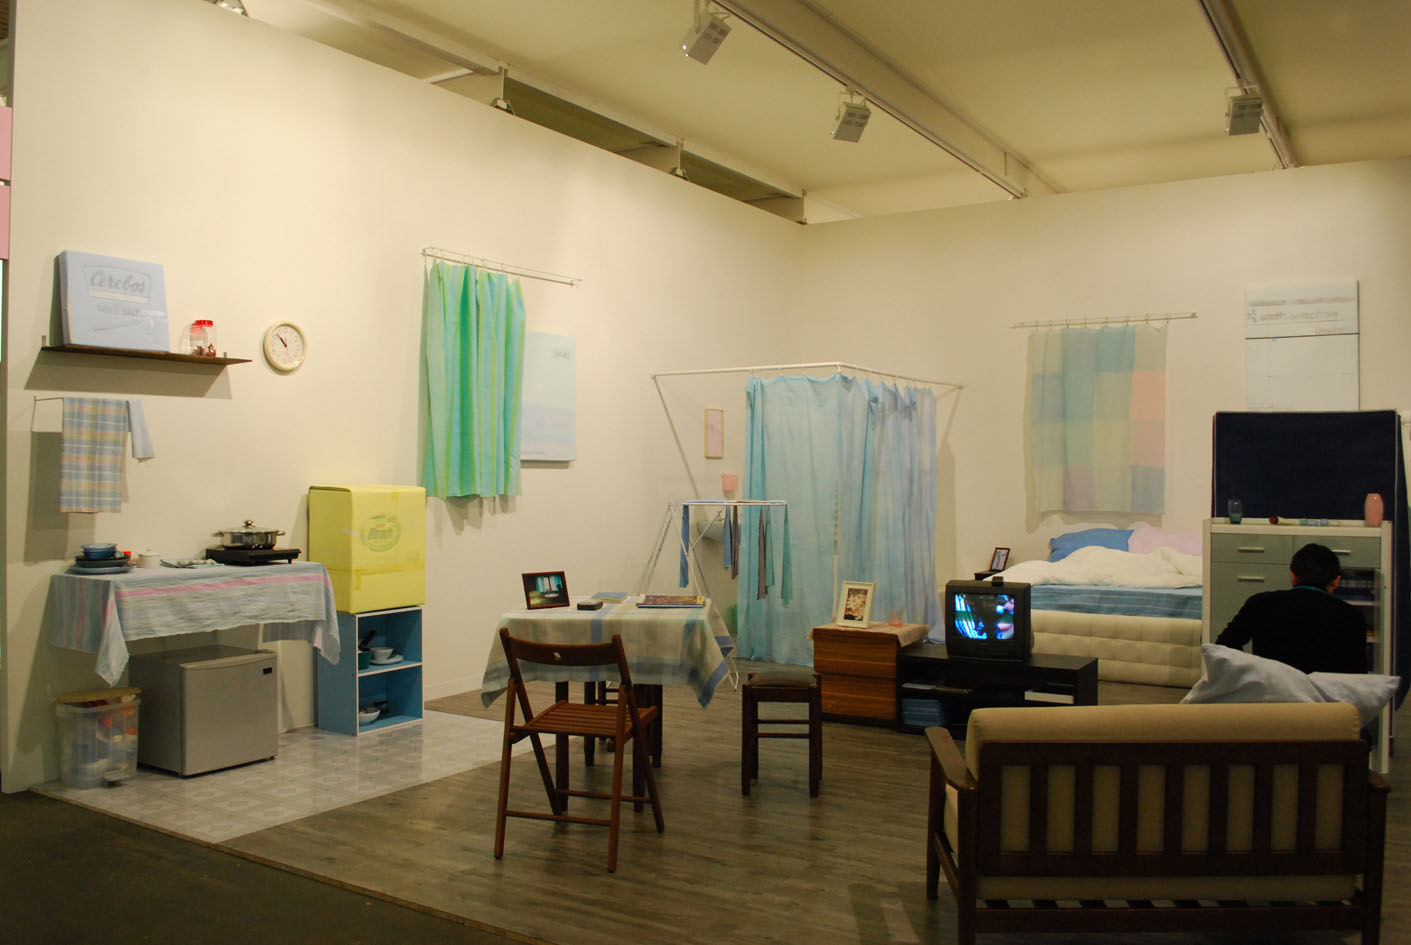 Lee Kit, How to set up an apartment for Johnny, 2011, materiali vari, dimensioni ambiente, Osage gallery